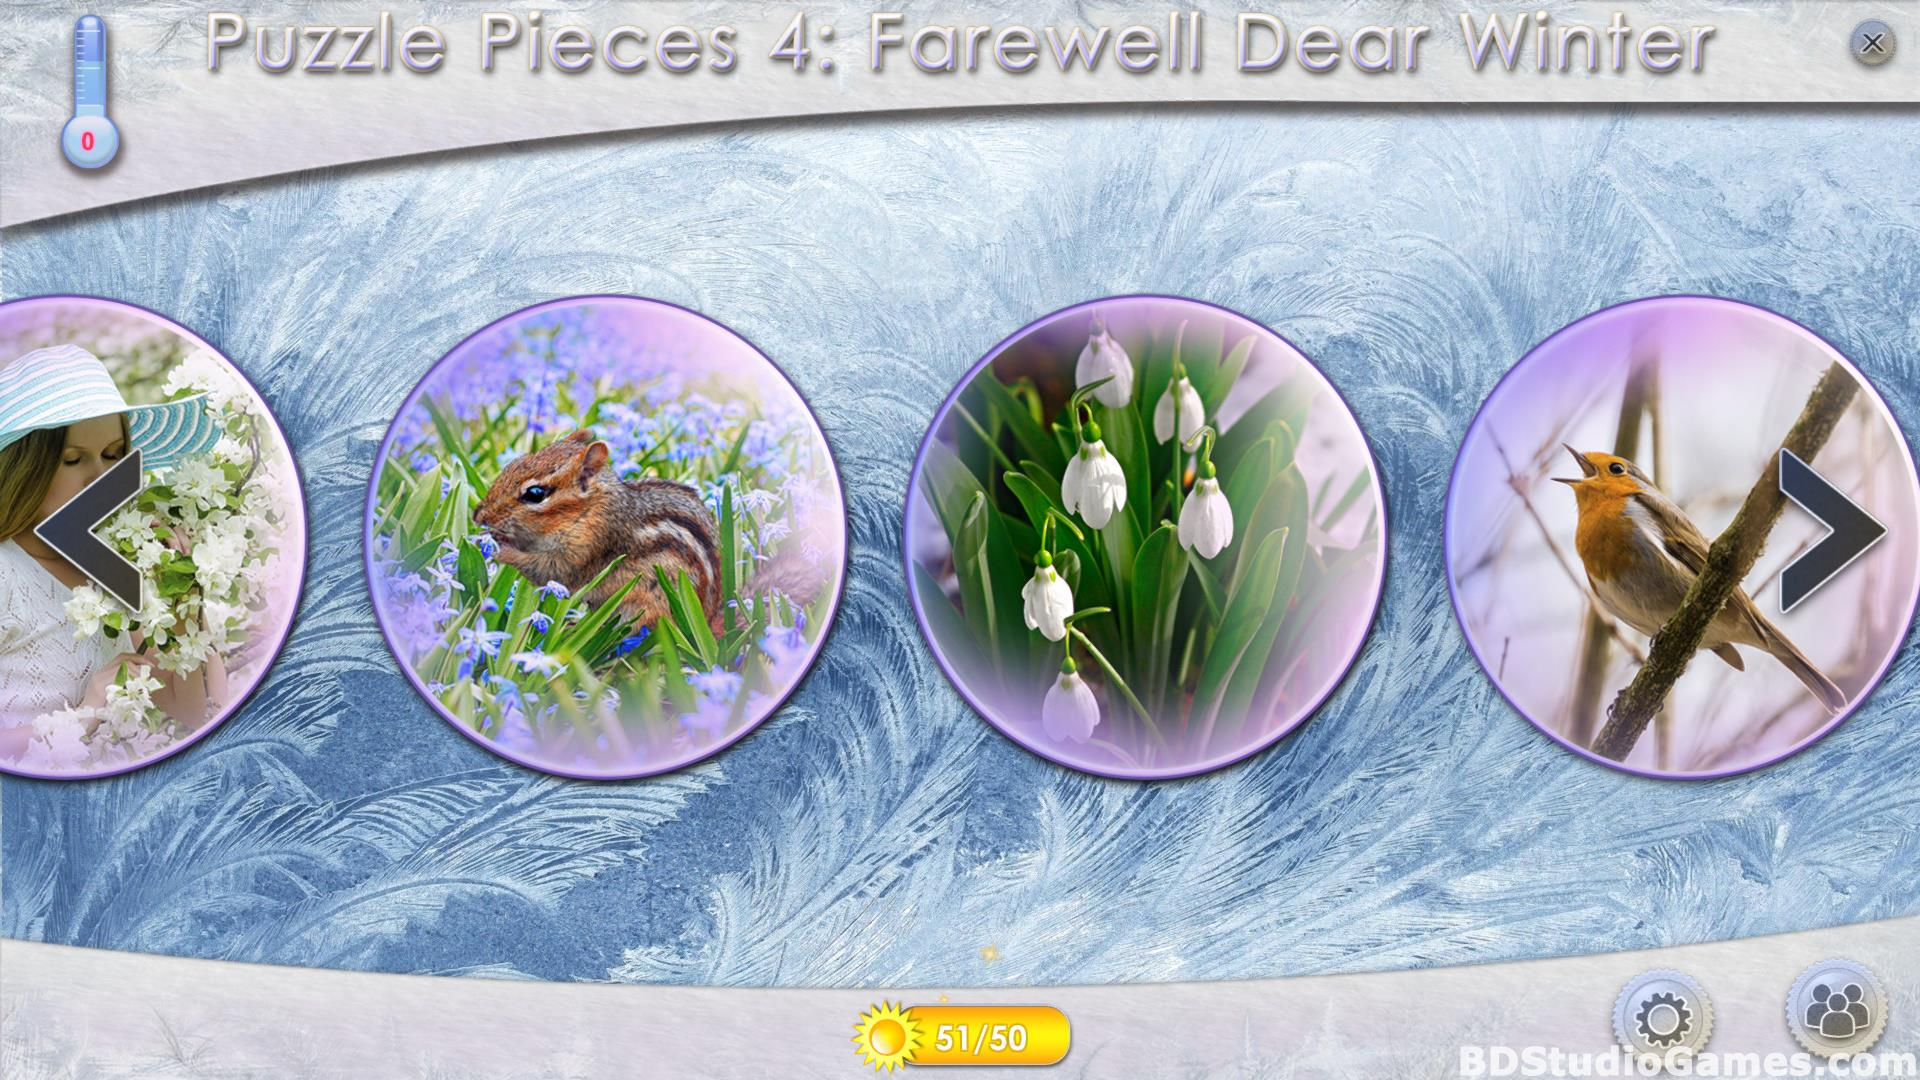 Puzzle Pieces 4: Farewell Dear Winter Free Download Screenshots 02